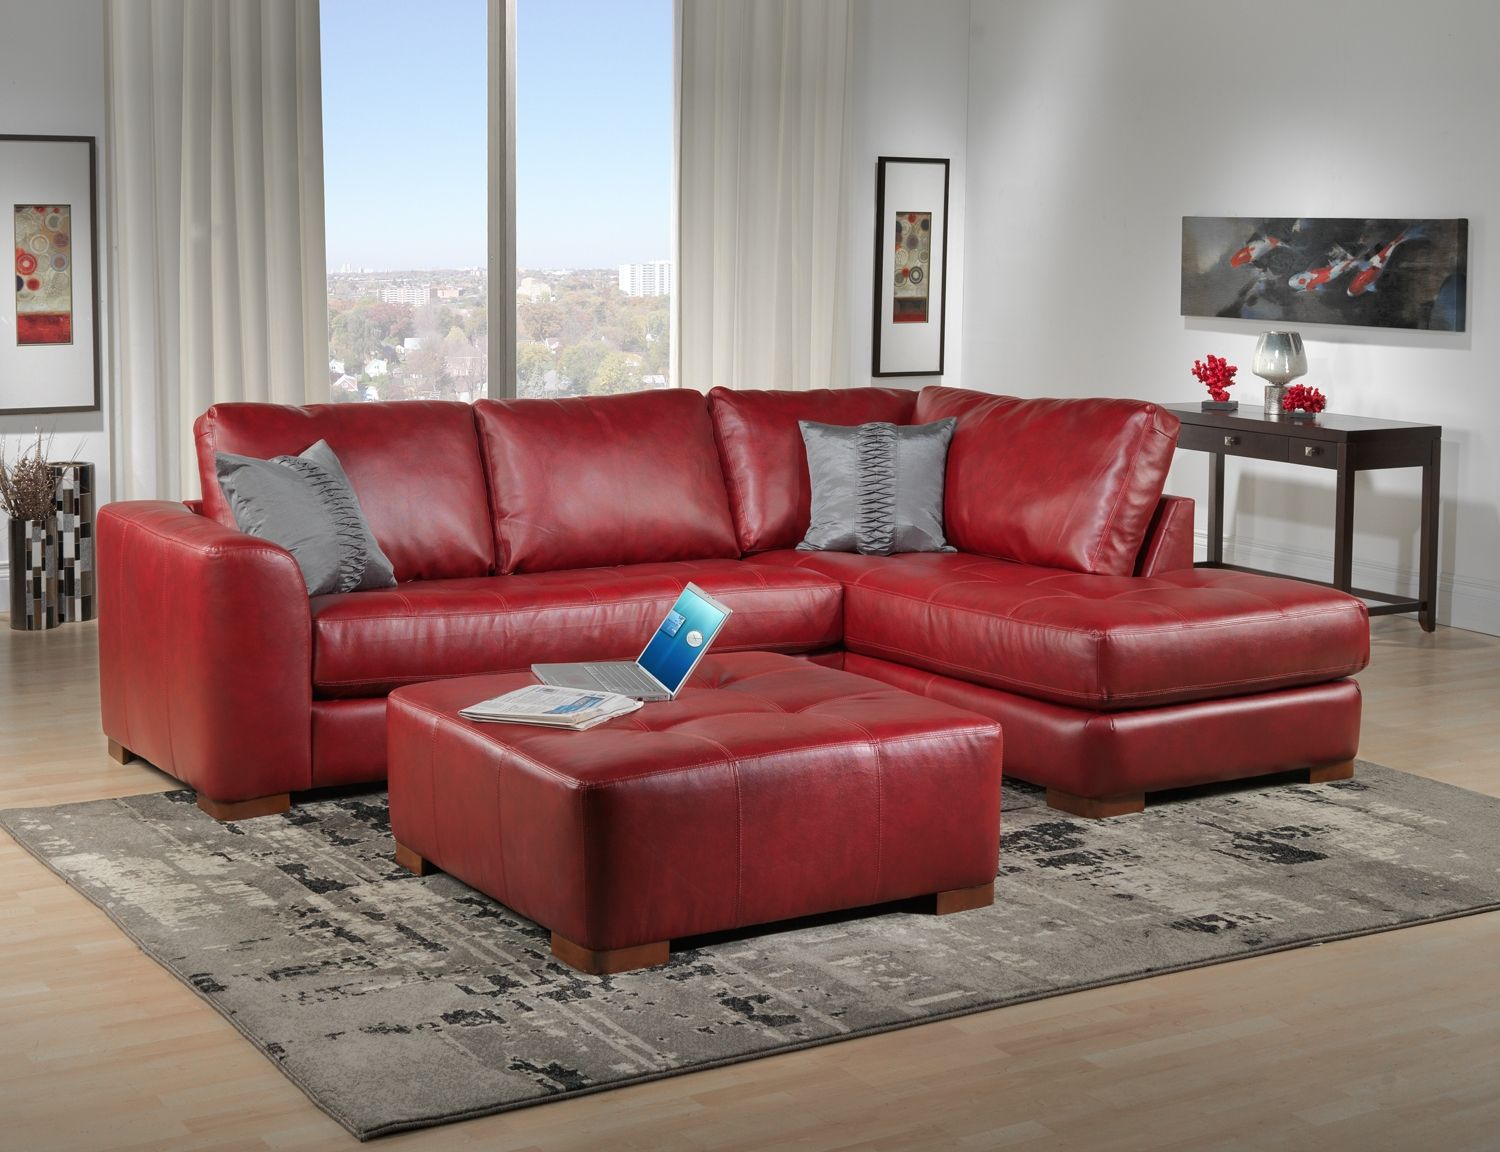 I Want A Red Leather Couch CouchesRed